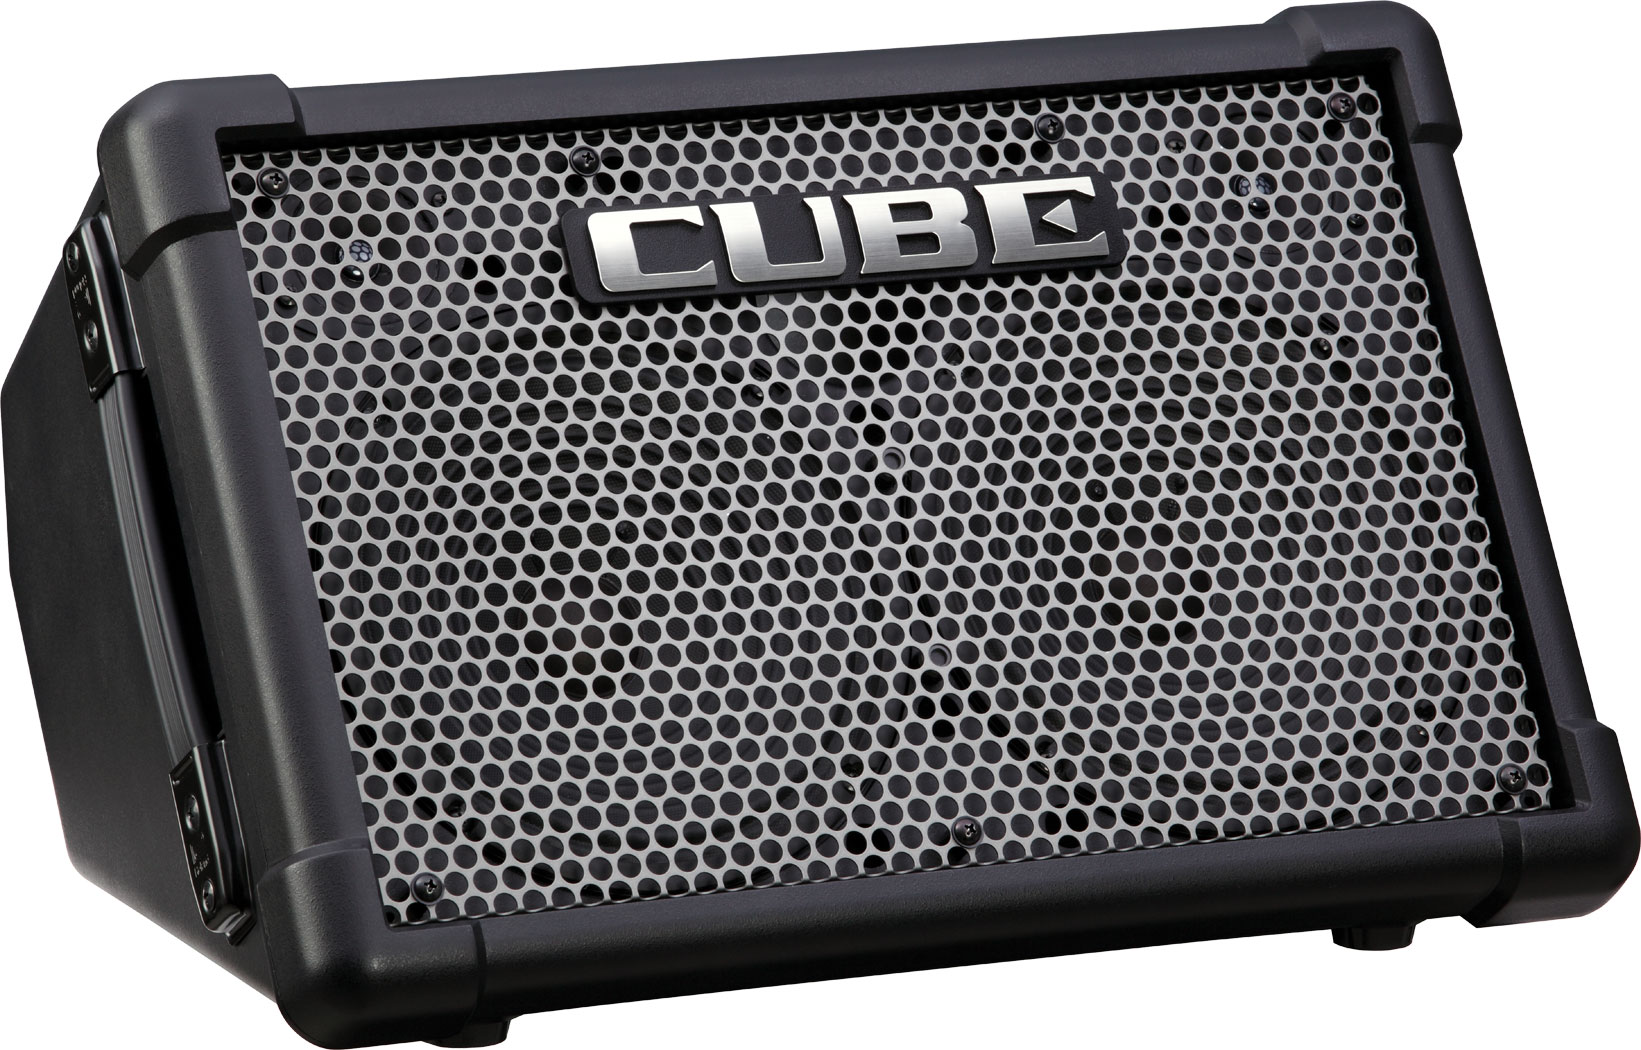 NEW Black CUBE Street EX Battery-Powered Stereo Amplifier